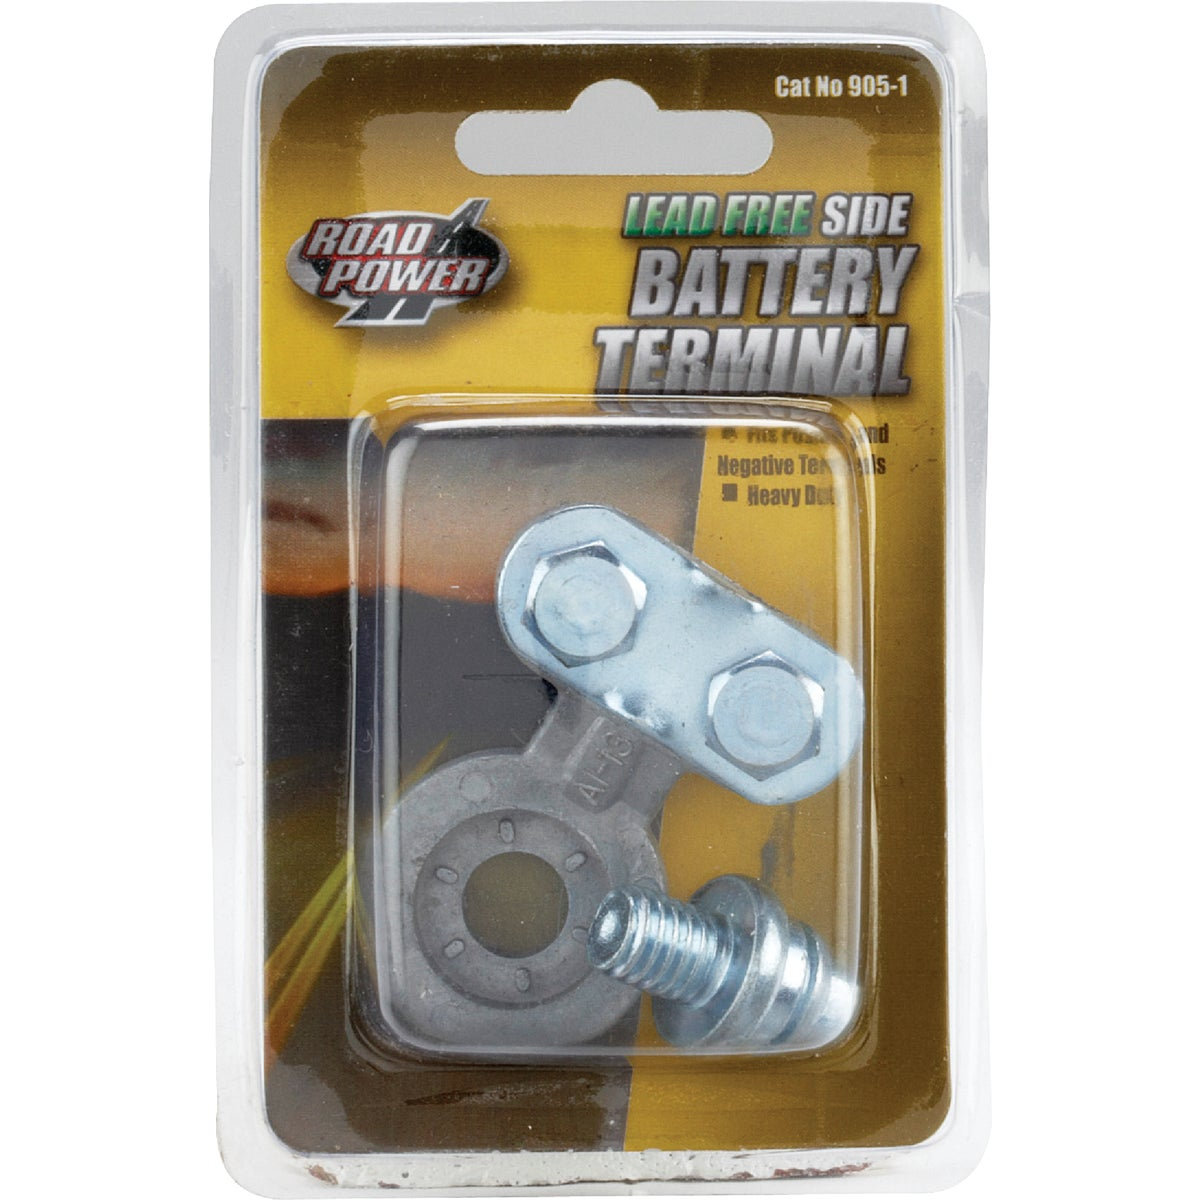 Side Battery Terminal